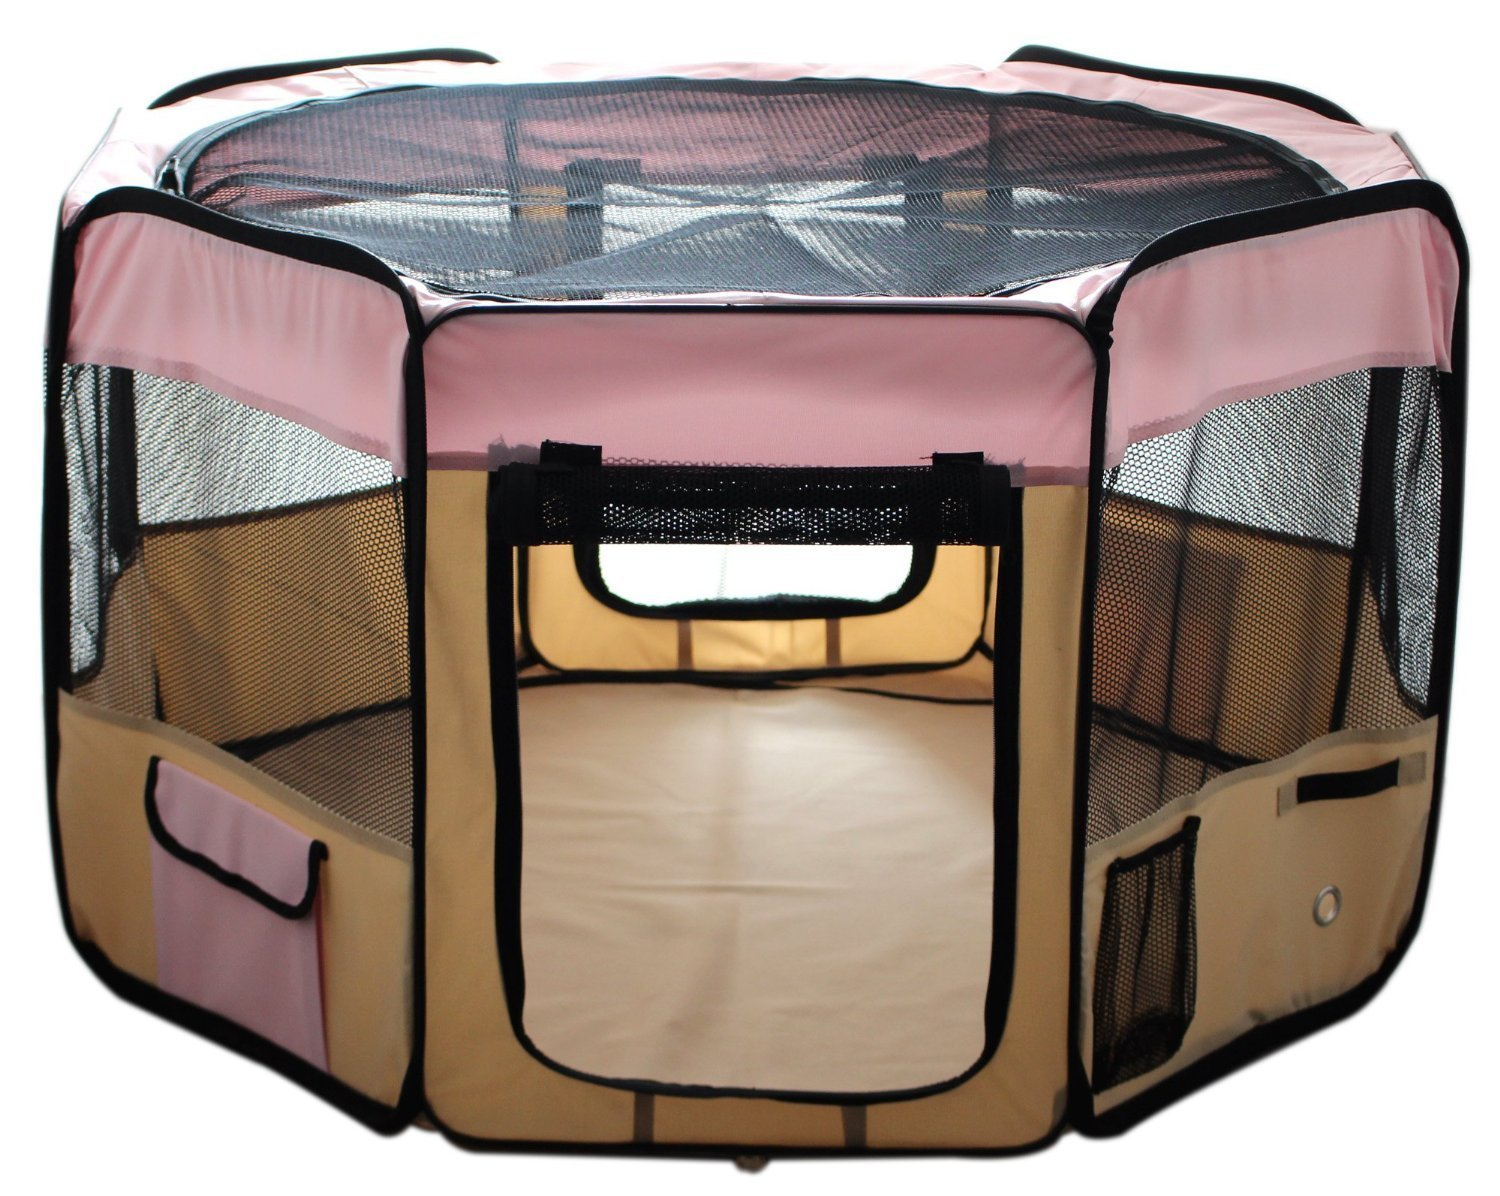 ESK COLLECTION Dog Playpen